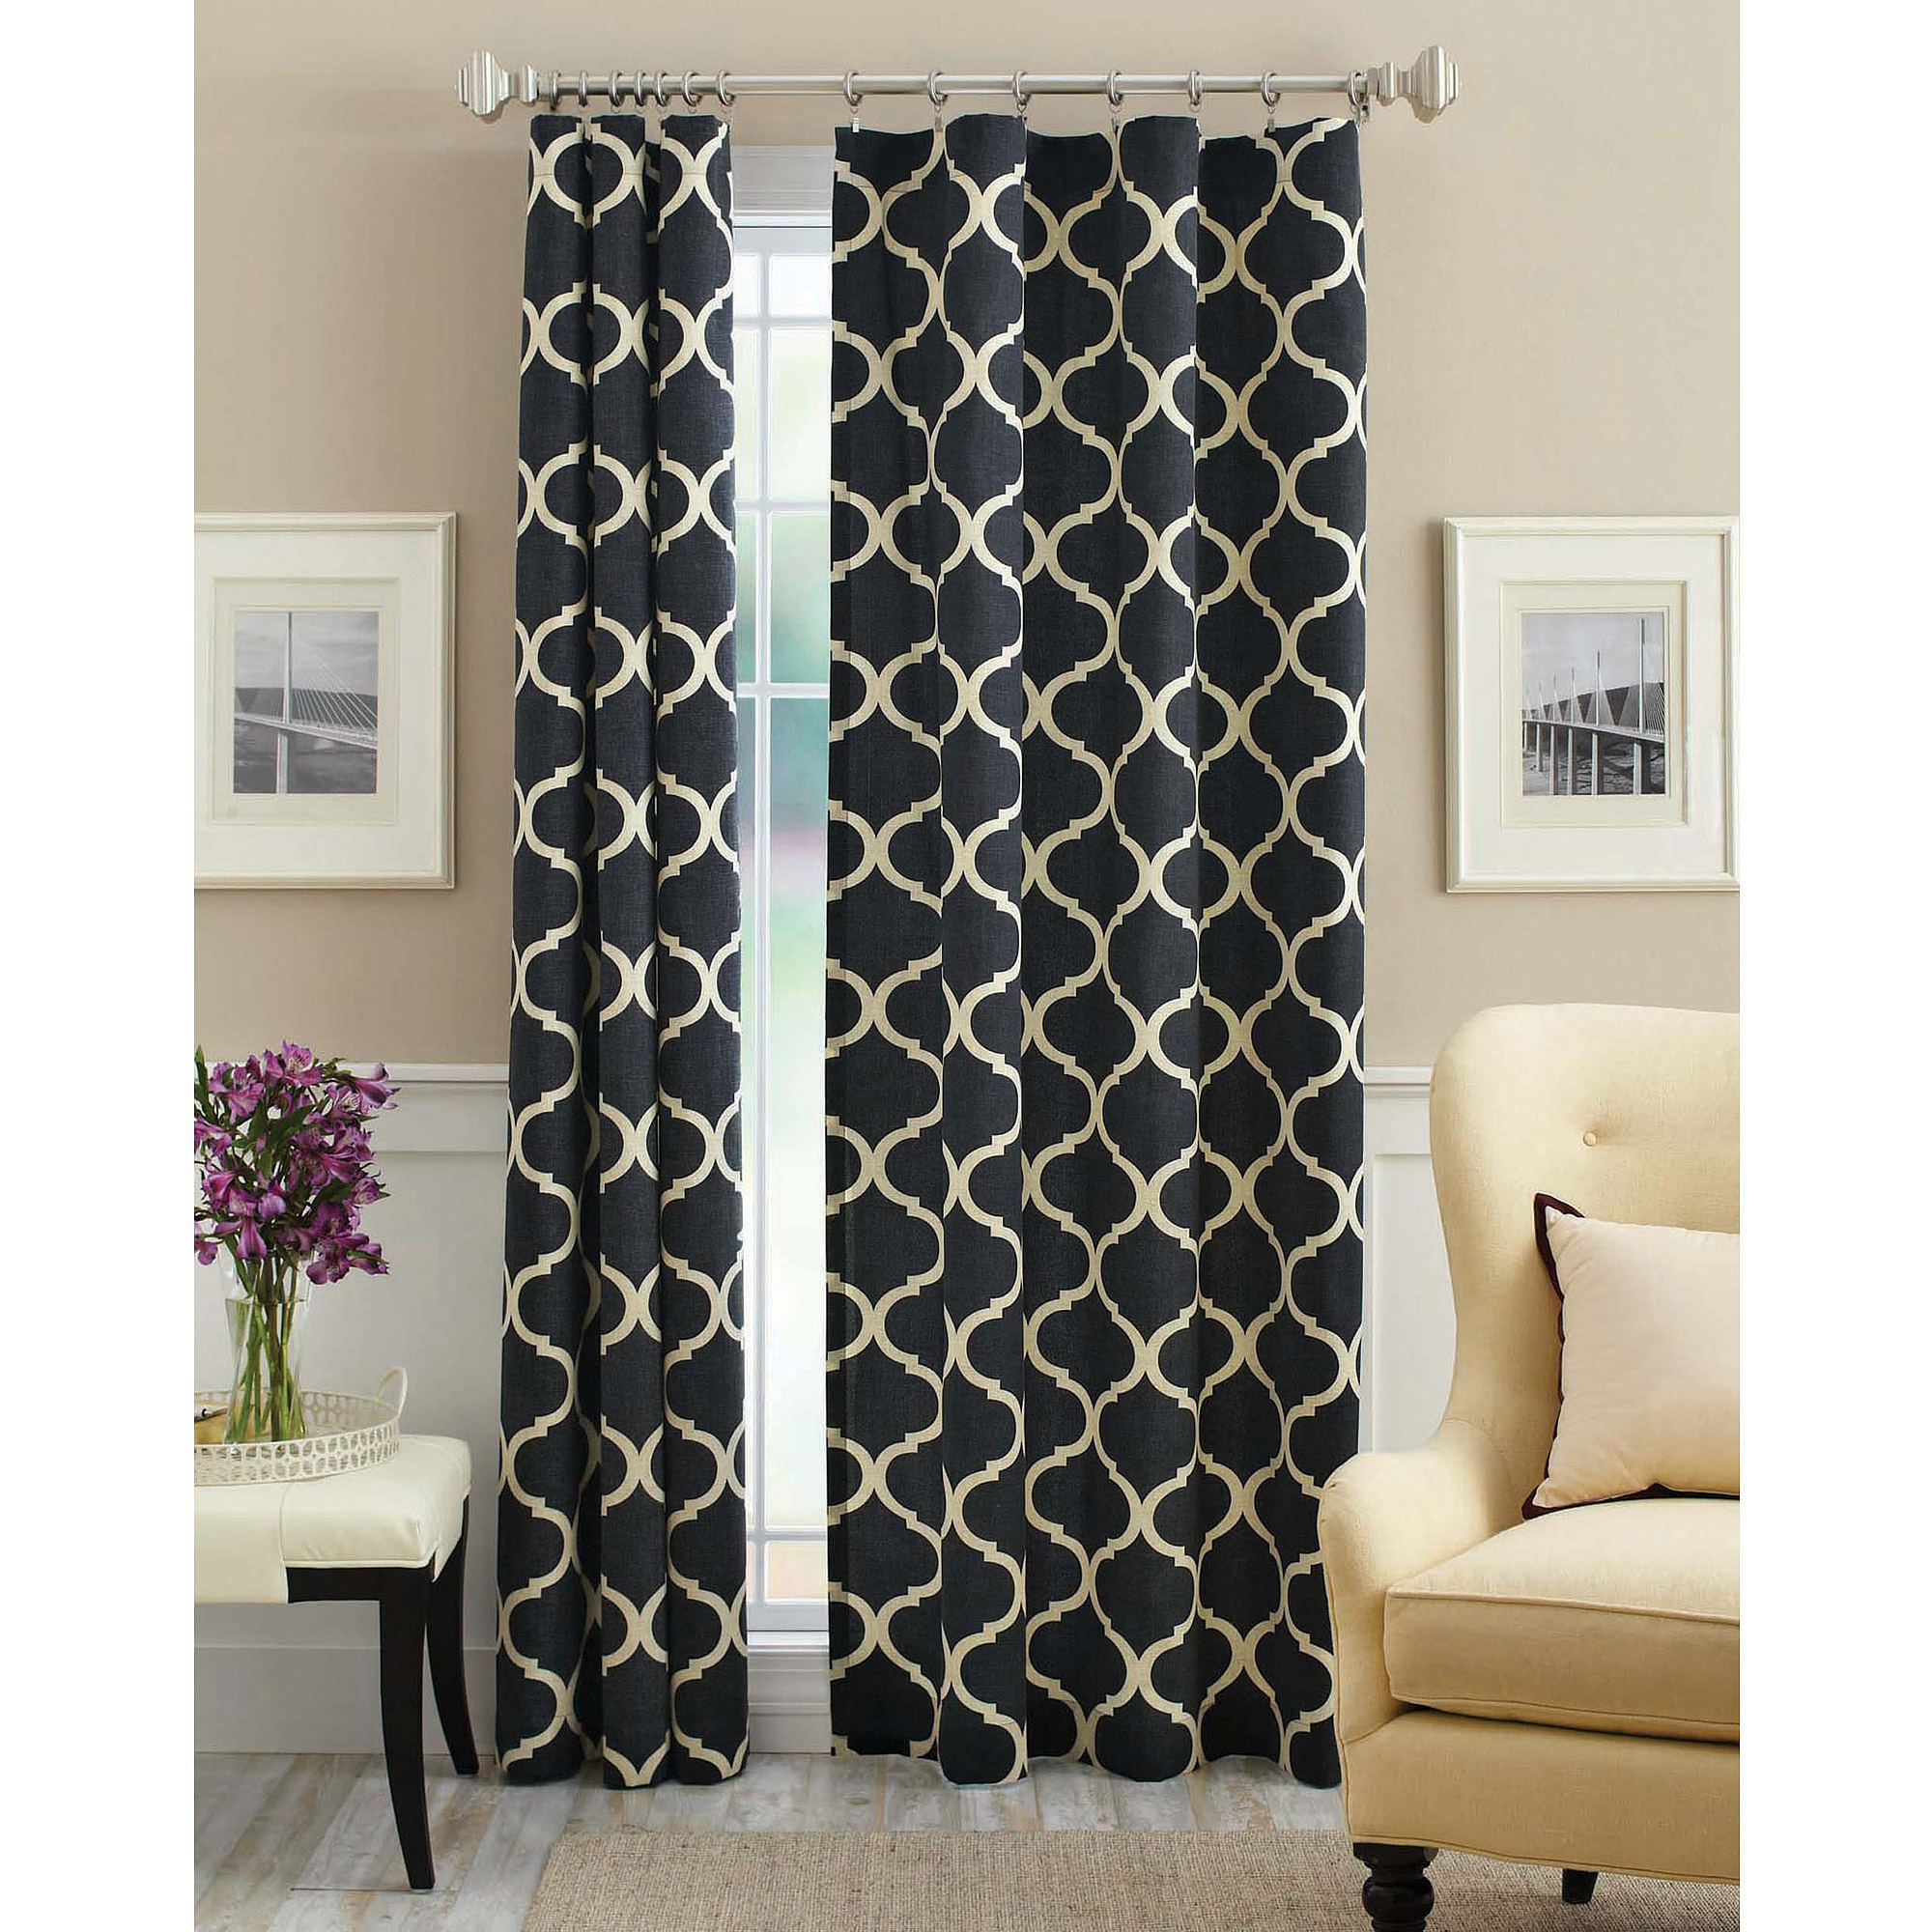 living spice modern sunflo drapes furniture red room inch black window owl for target desirable ideas curtains valance of valances design full white yellow colored sliding wi size cheap kitchen and patterns swags uk awesome shower